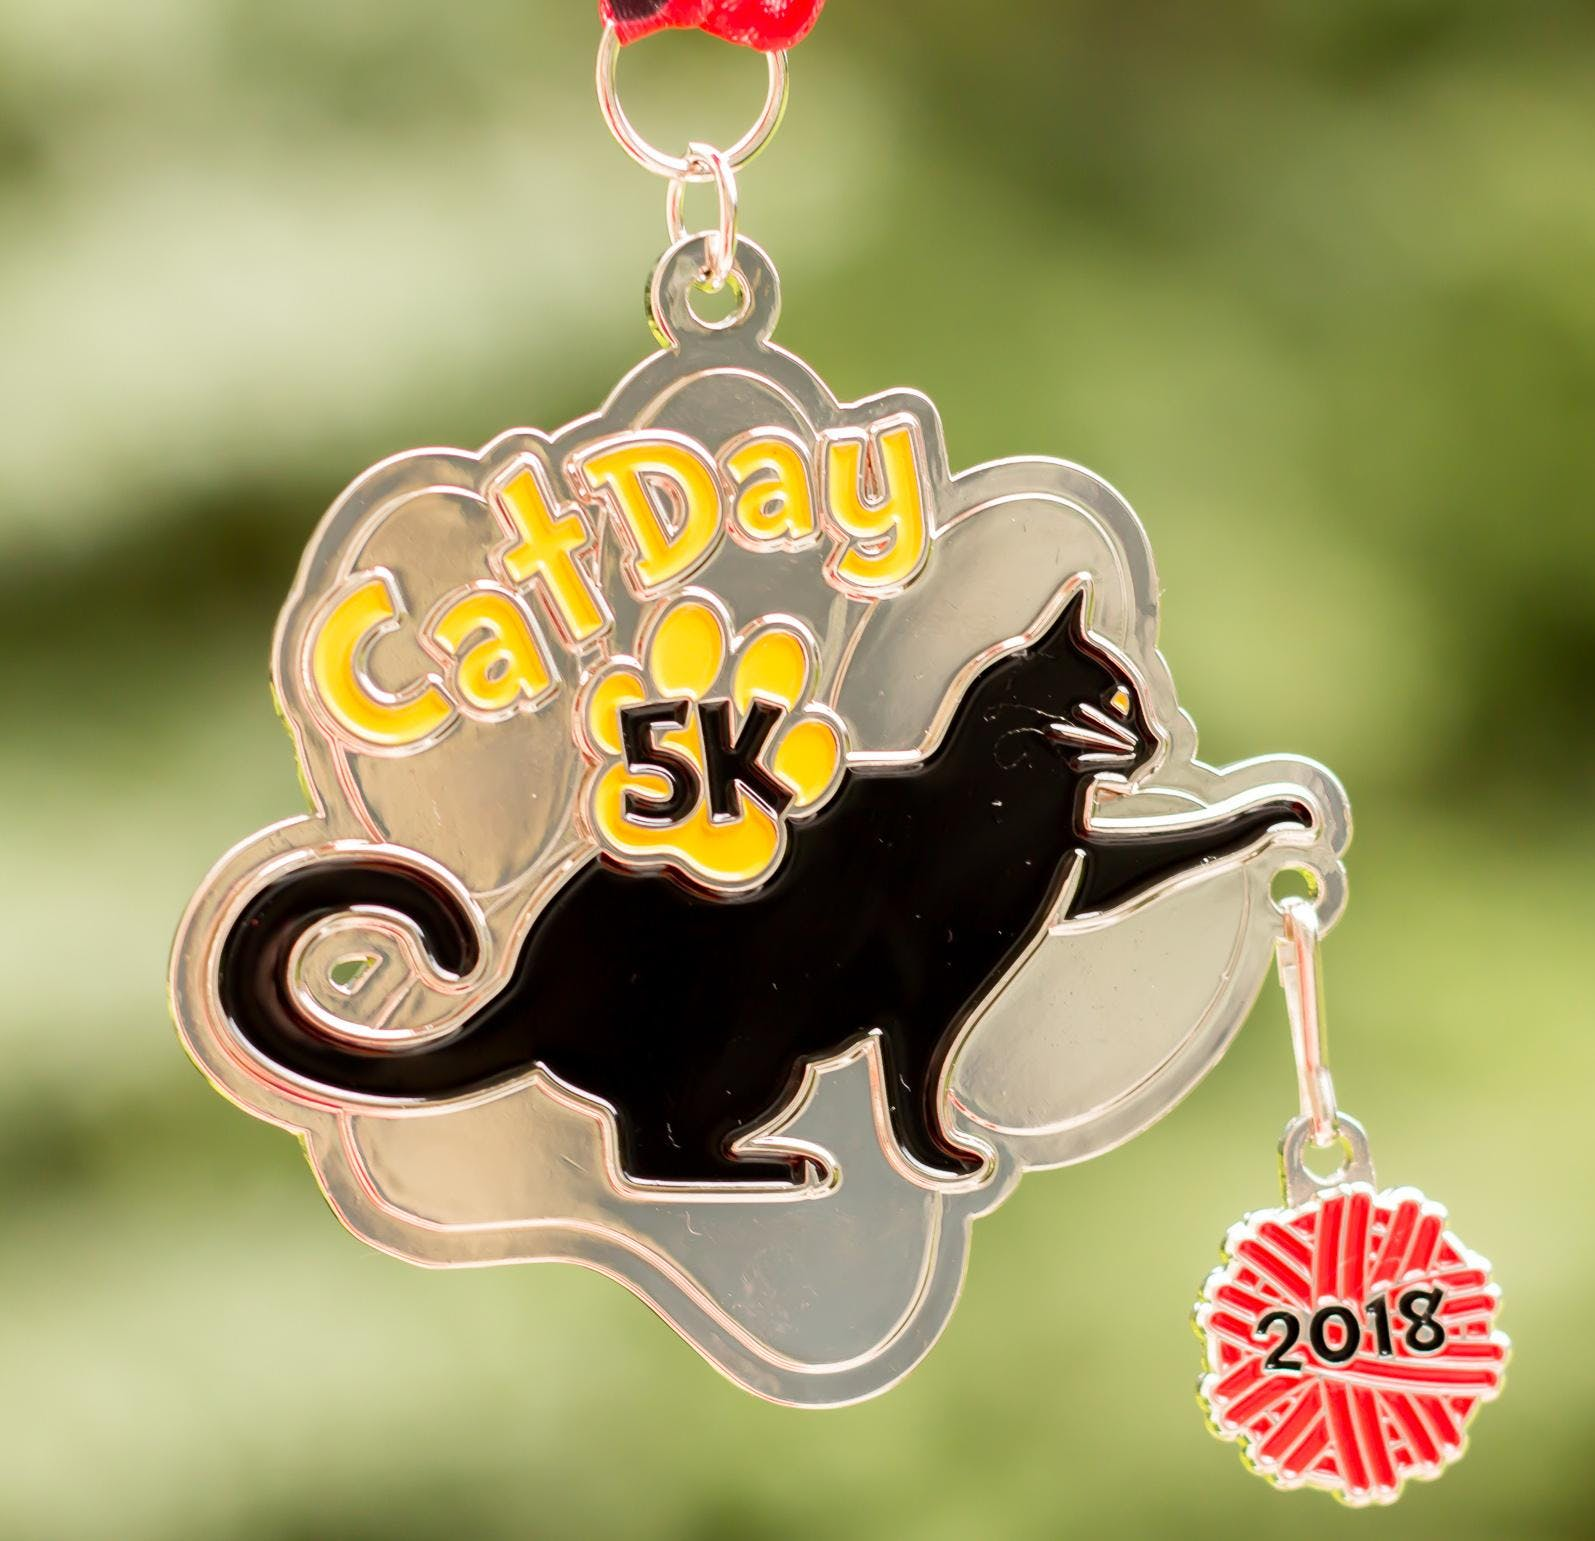 Now Only $10 Cat Day 5K & 10K -Knoxville